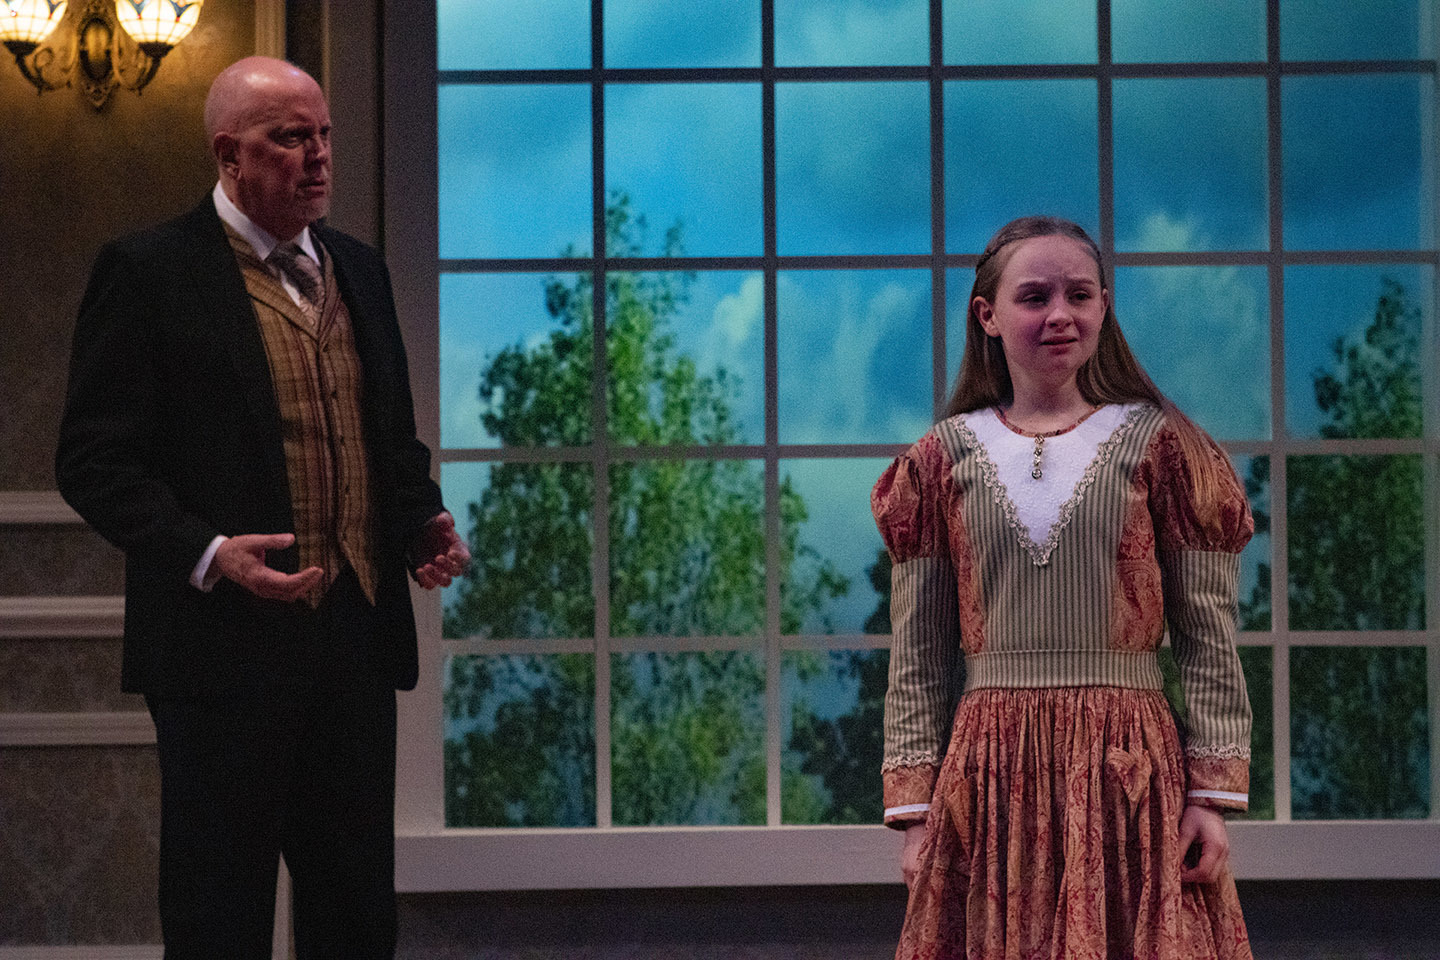 BWW Review: Thought-Provoking THE NETHER at Dobama